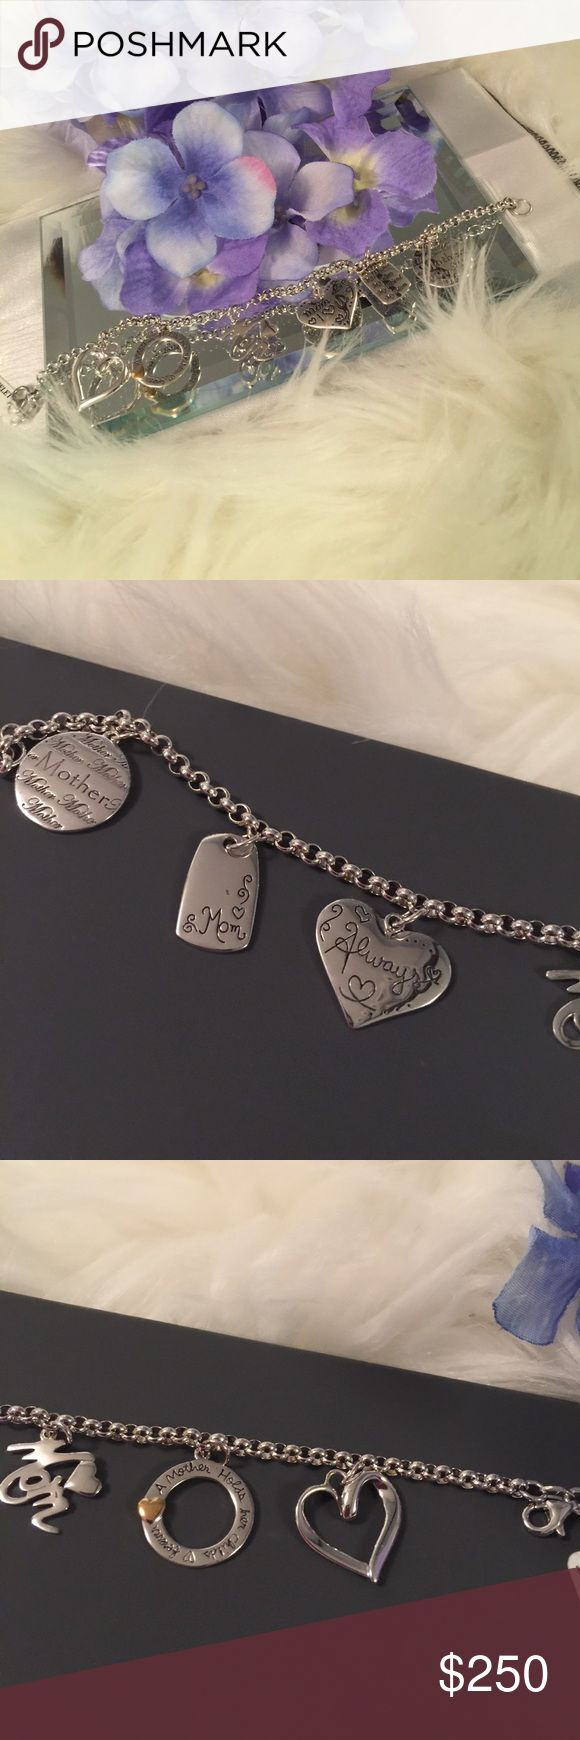 Lia Sophia Bracelet Surprise Mom with a BEAUTIFUL Lia Sophia MOM Charm Bracelet that says it all! Beautiful little sayings in every charm! The perfect gift for Mom! Sterling Silver! 7.5 in! 6 charms! NWT! Comes with box in pic!💖Has a hint of gold in one of the charms as shown in pic😉 Lia Sophia Jewelry Bracelets